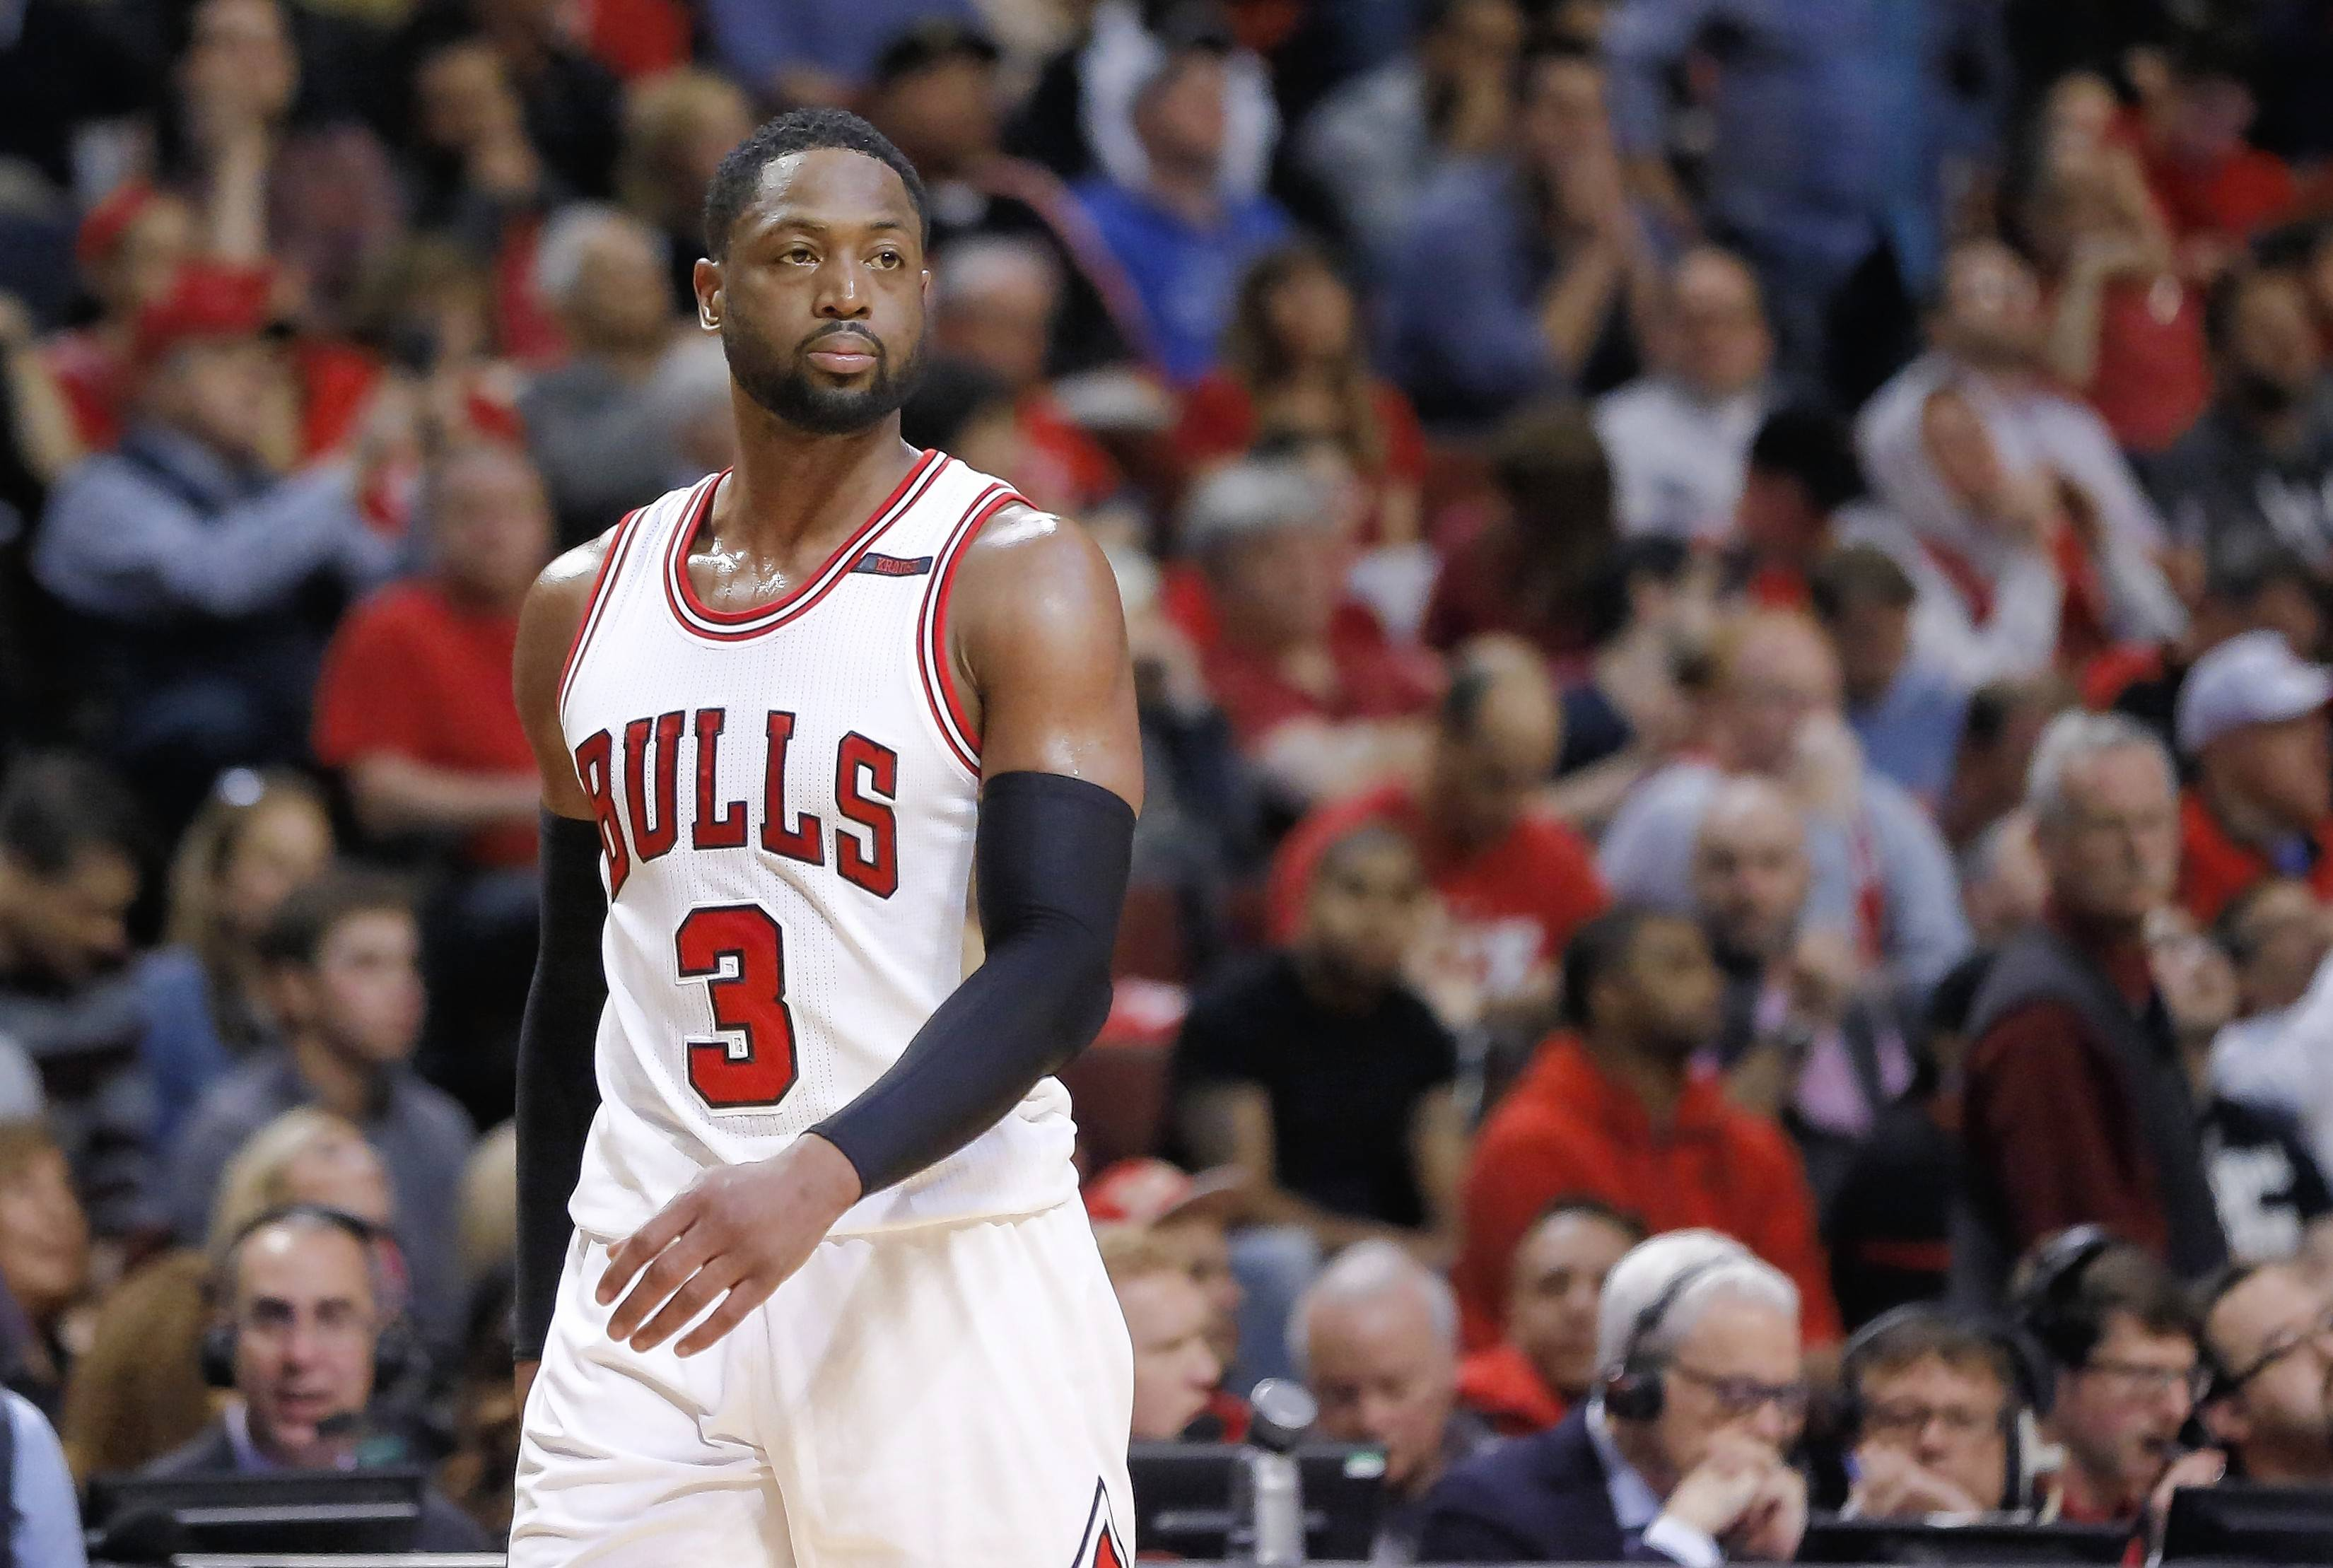 Chicago Bulls' Dwyane Wade walks toward the basket coming out of a break during the second half in Game 3 of an NBA basketball first-round playoff series against the Boston Celtics in Chicago, Friday, April 21, 2017. The Celtics won 104-87. (AP Photo/Charles Rex Arbogast)